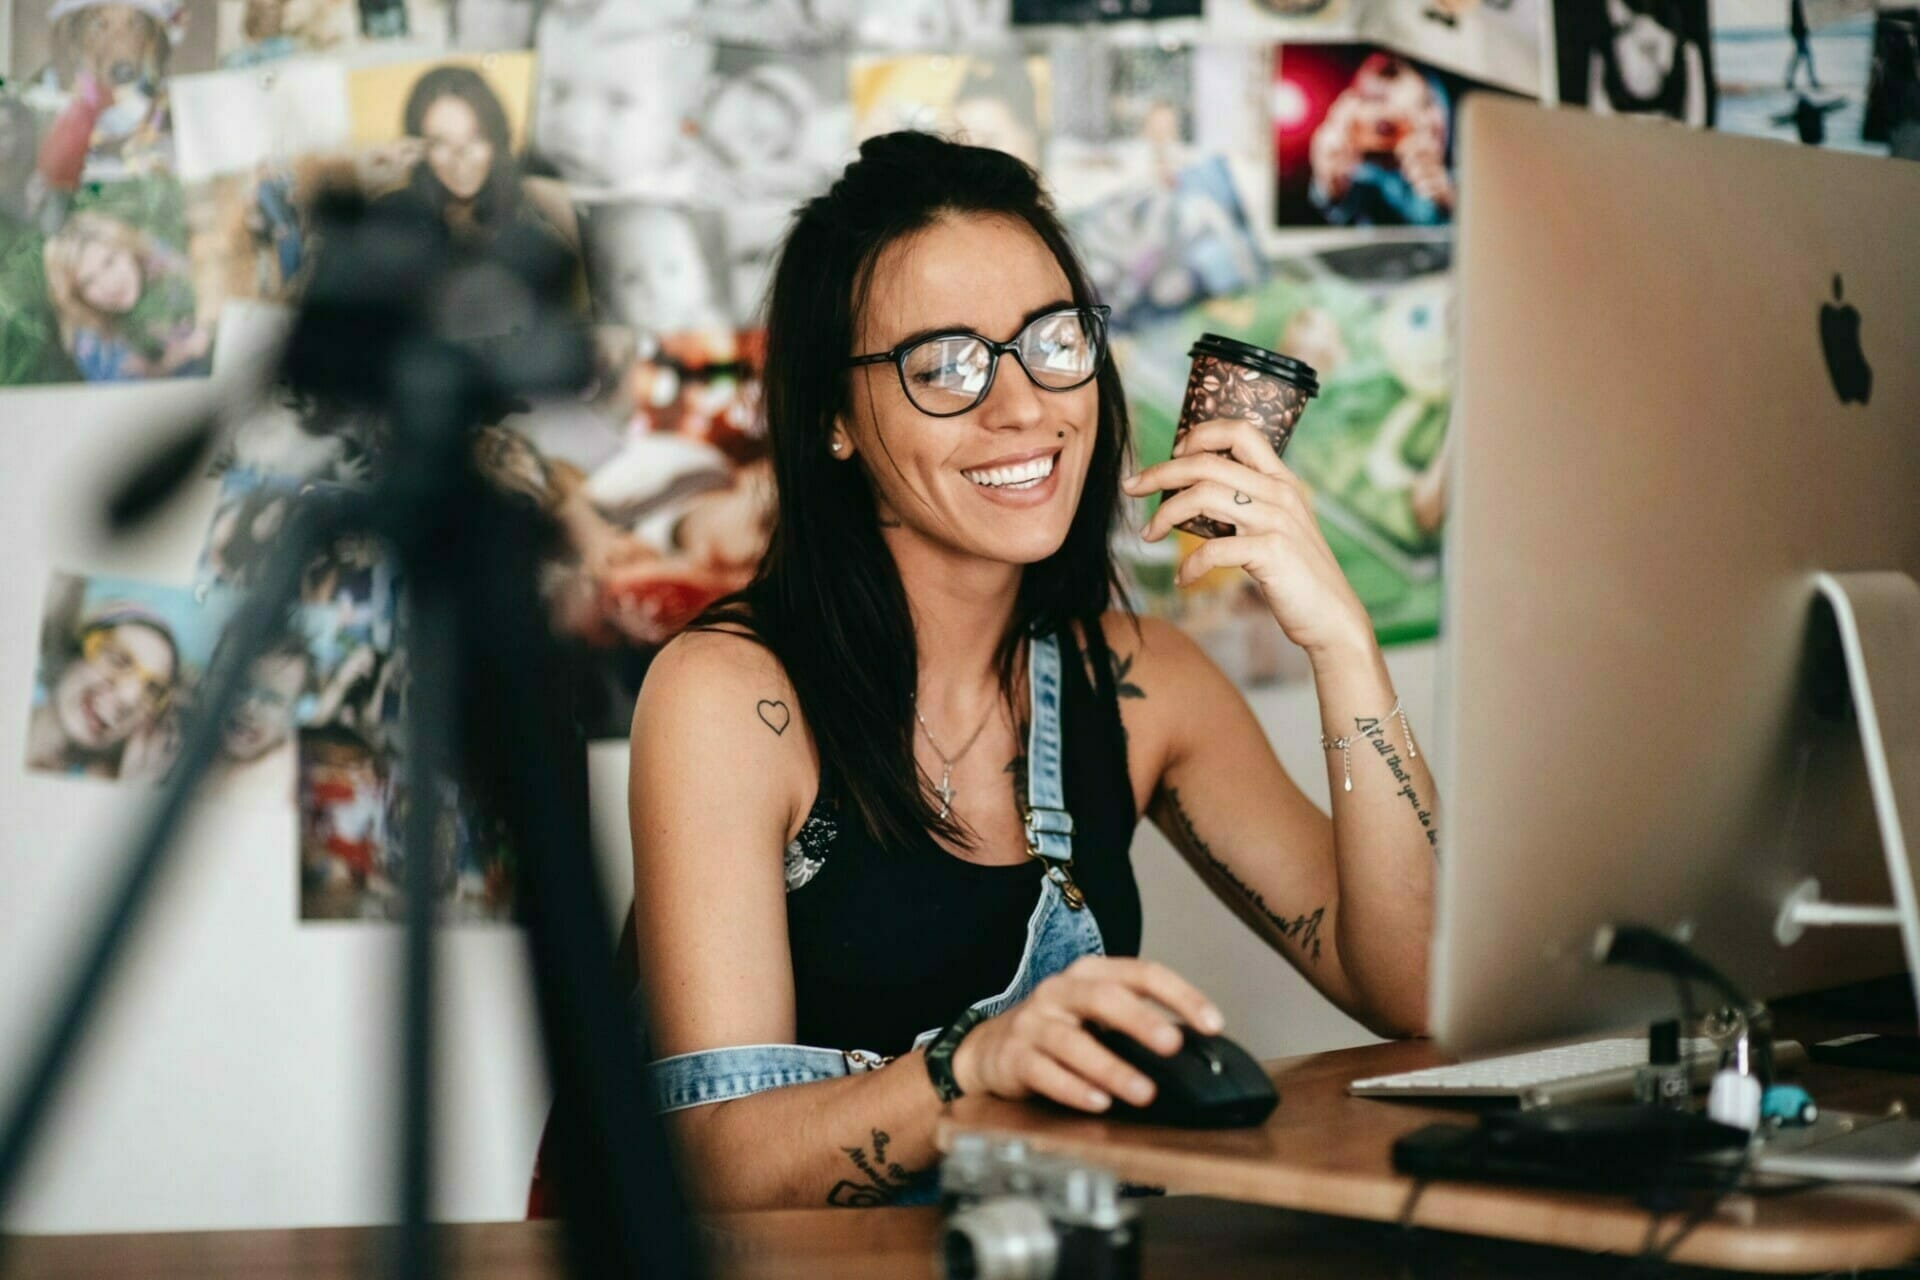 Business Owner Smiling At Positive Comments About Her Business On Social Media